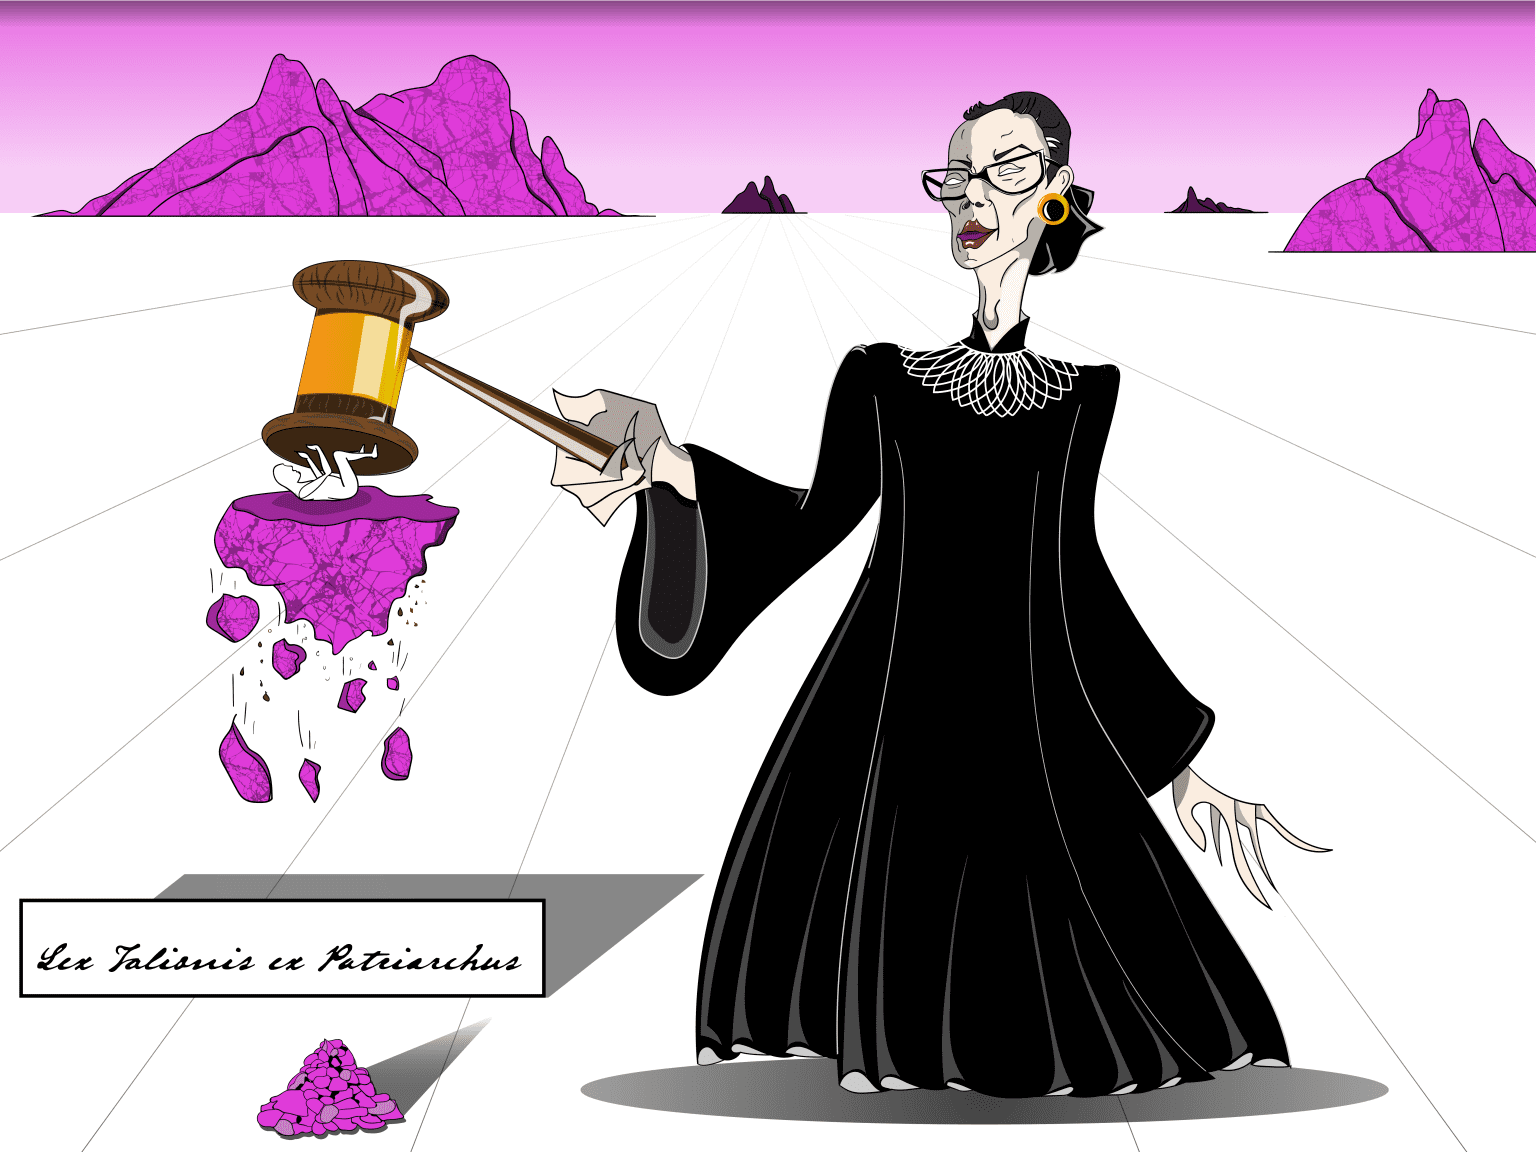 Ruth Bader Ginsburg Portrait for Planned Parenthood